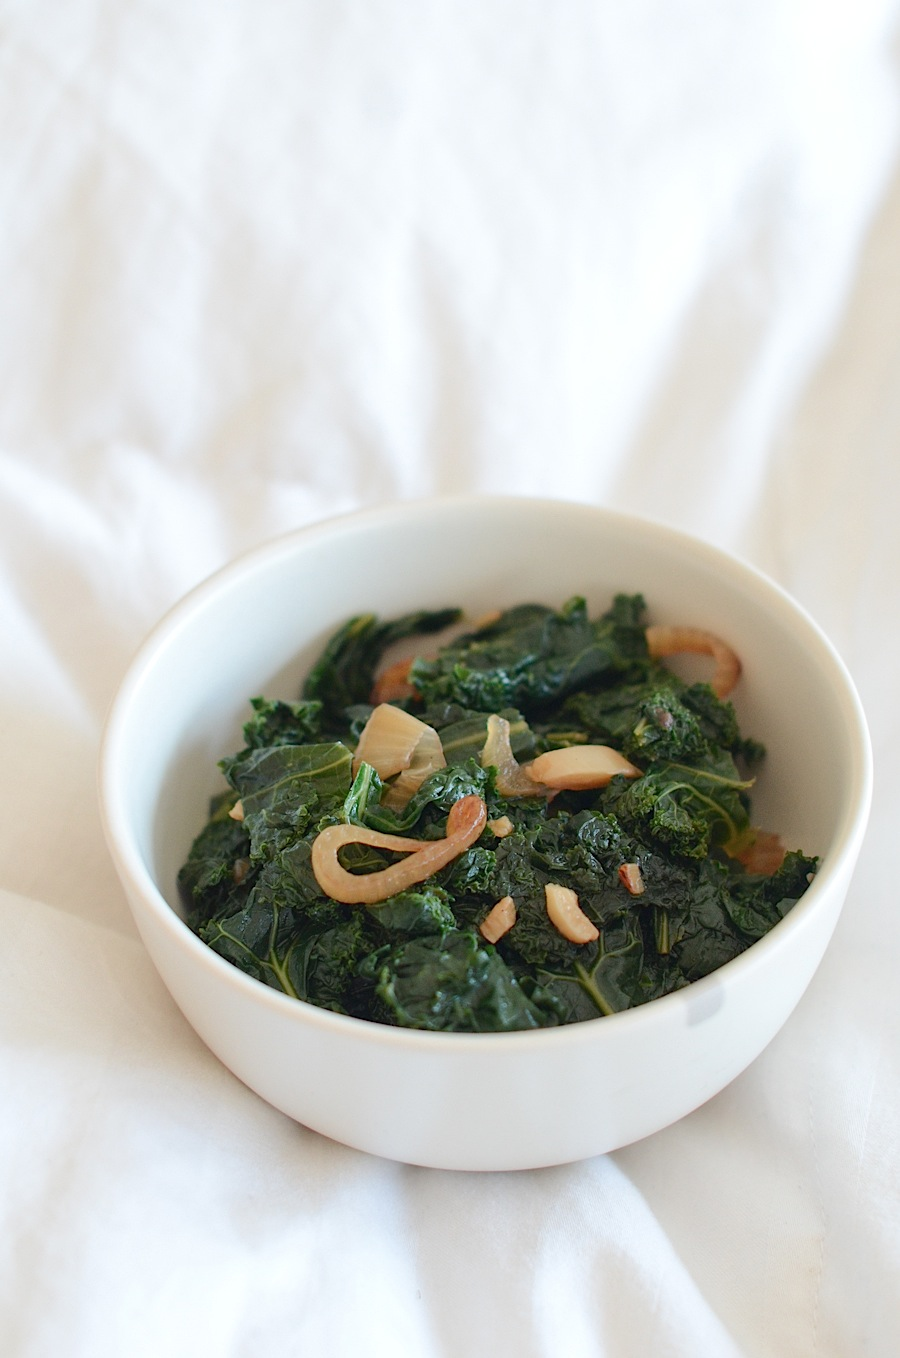 Sautéed Kale with Garlic and Shallots Recipe in Less Than 30 Minutes